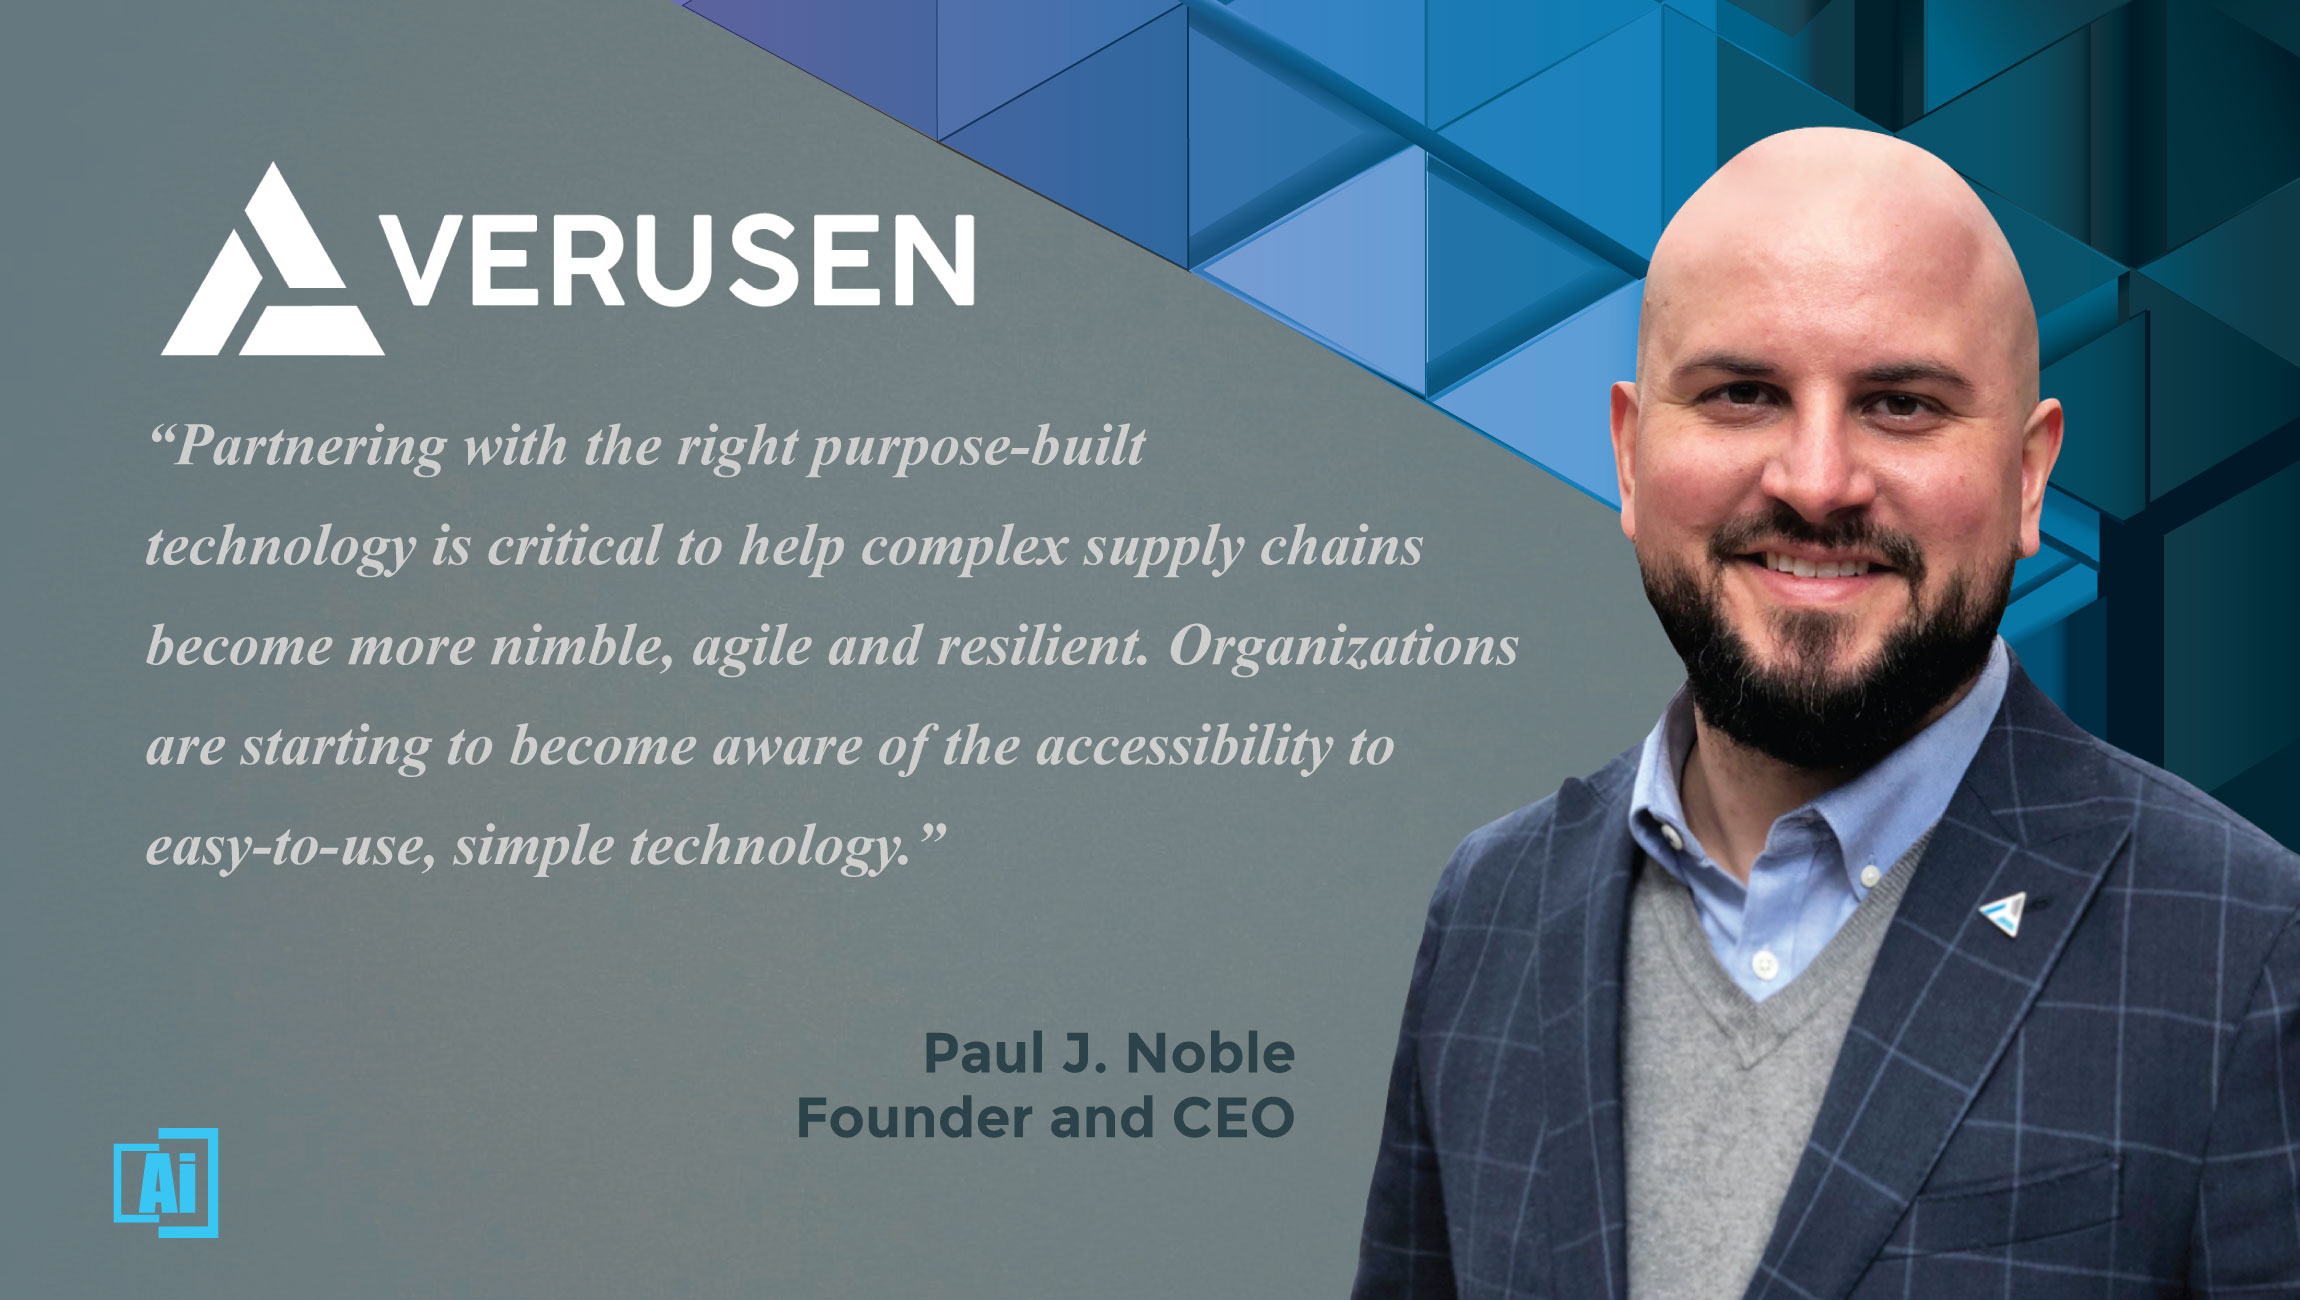 AiThority Interview Paul J. Noble, Founder and CEO at Verusen